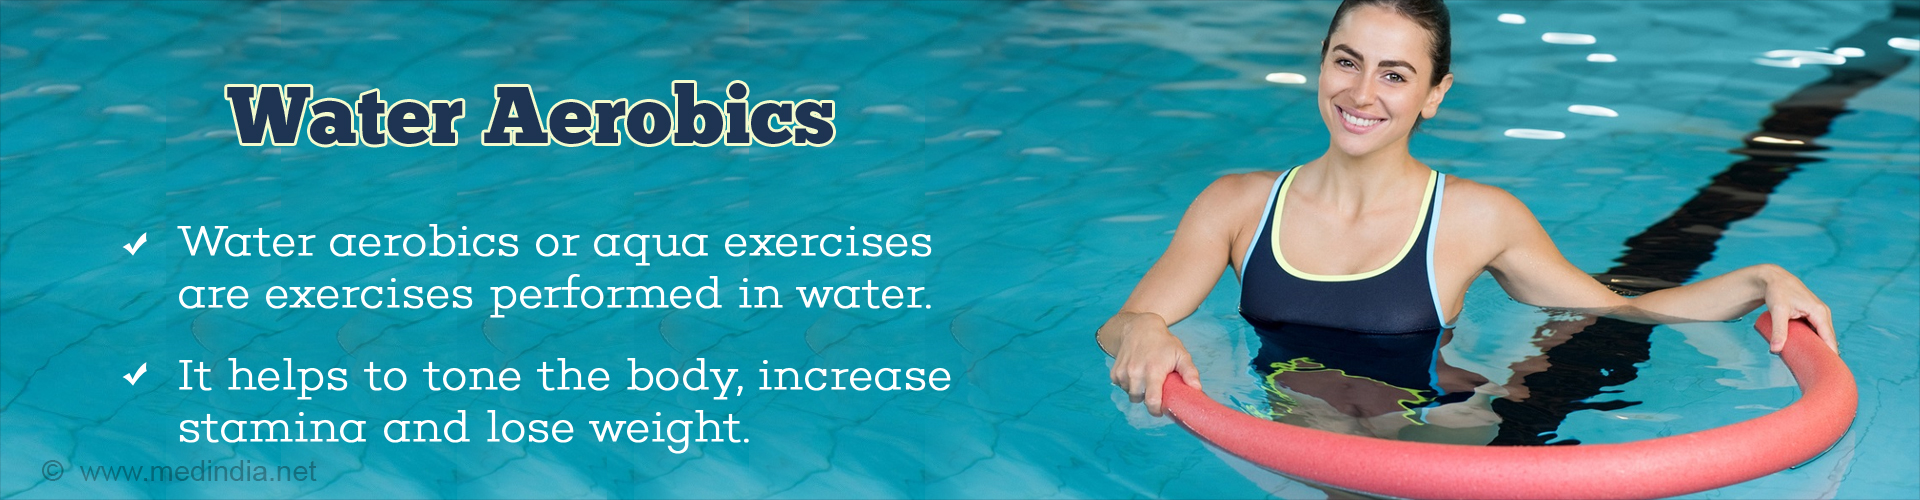 17cb968885b How to Shed the Extra Pounds with Water Aerobics